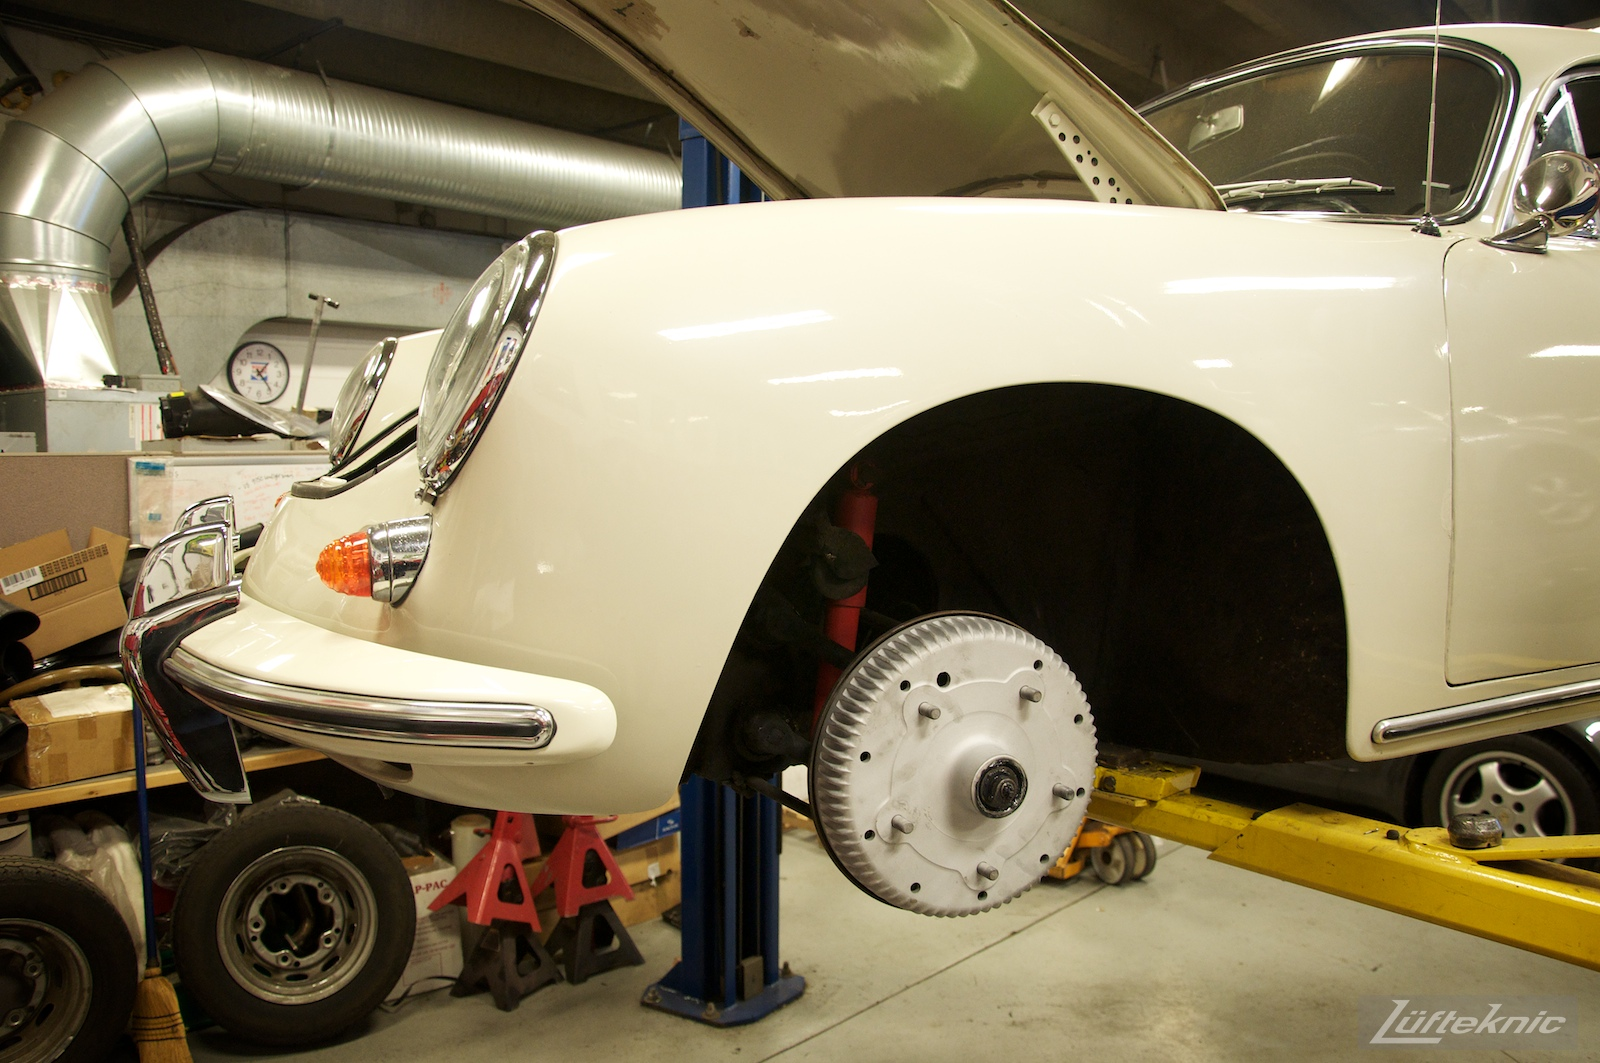 A white Porsche 356 on a lift at Lufteknic with the wheel removed showing a fresh brake drum